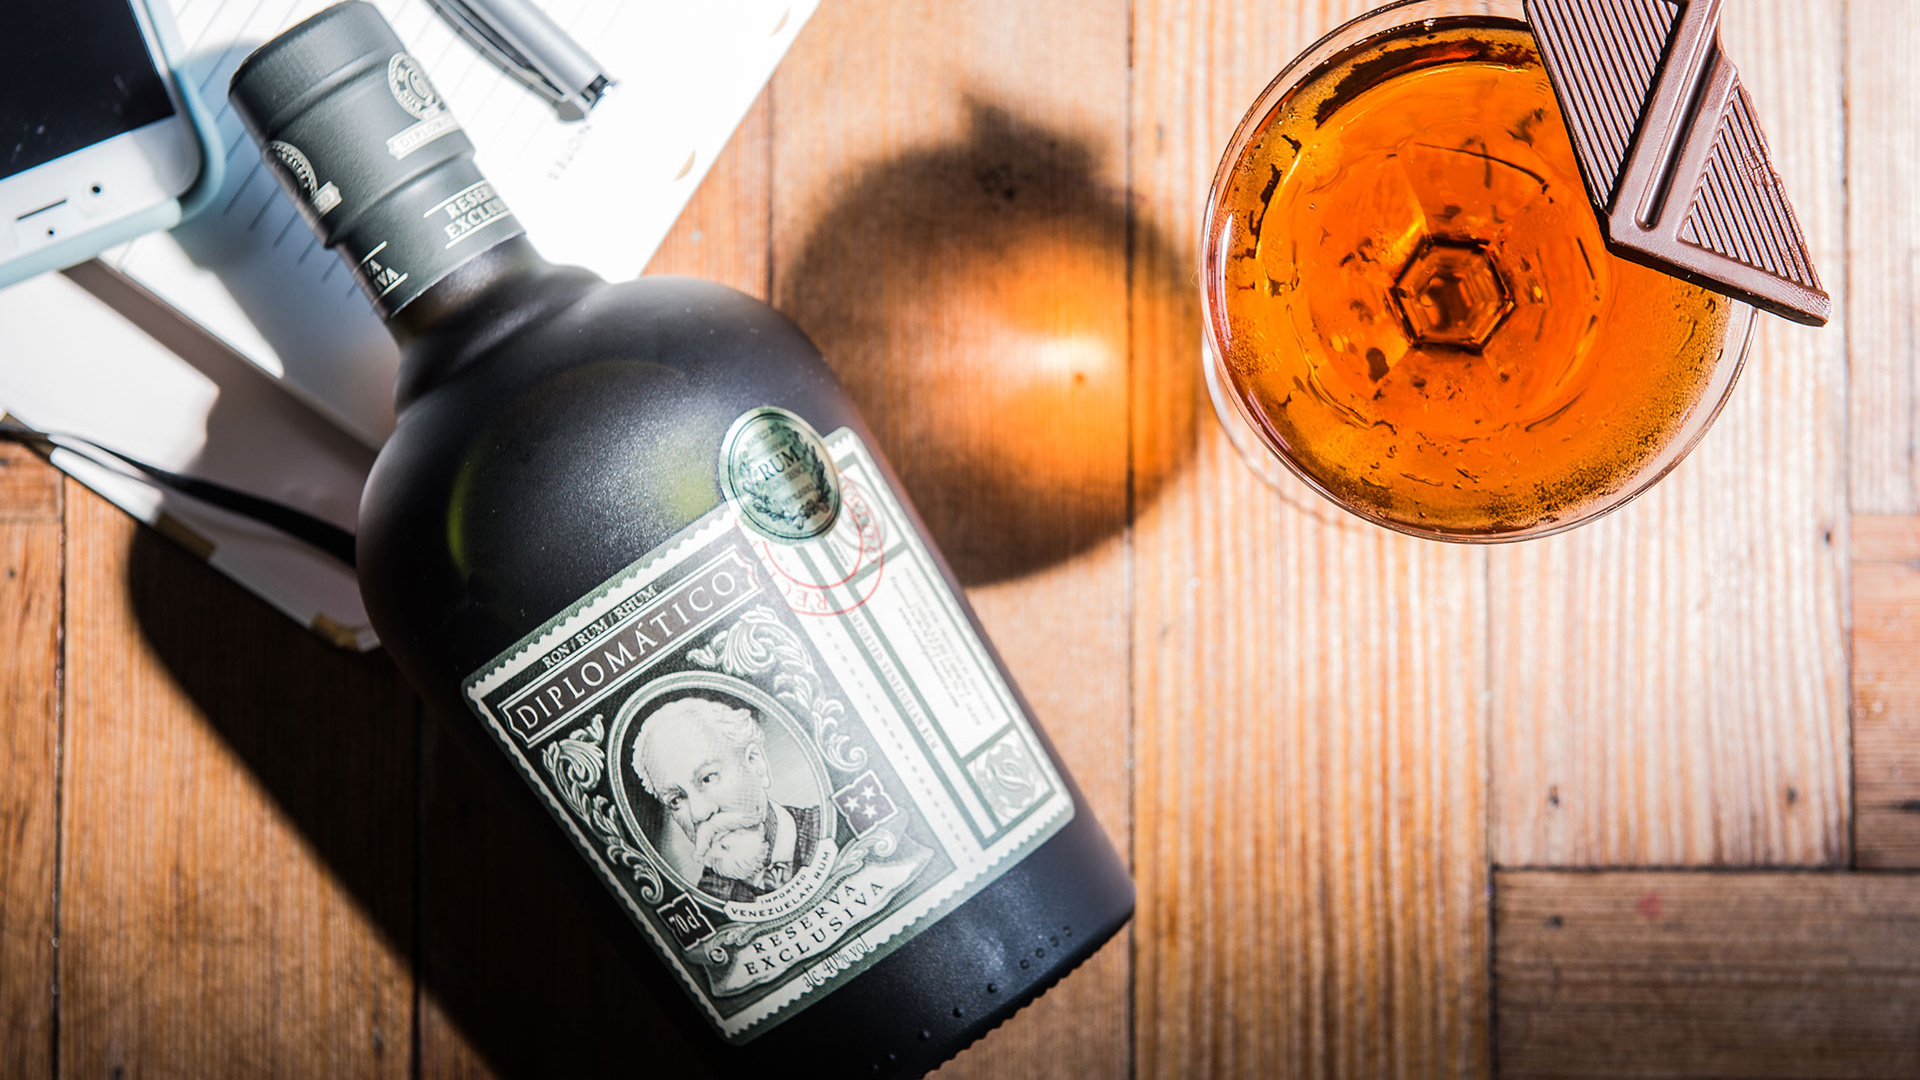 A bespoke cocktail created by Diplomatico for one of last year's Diplomats